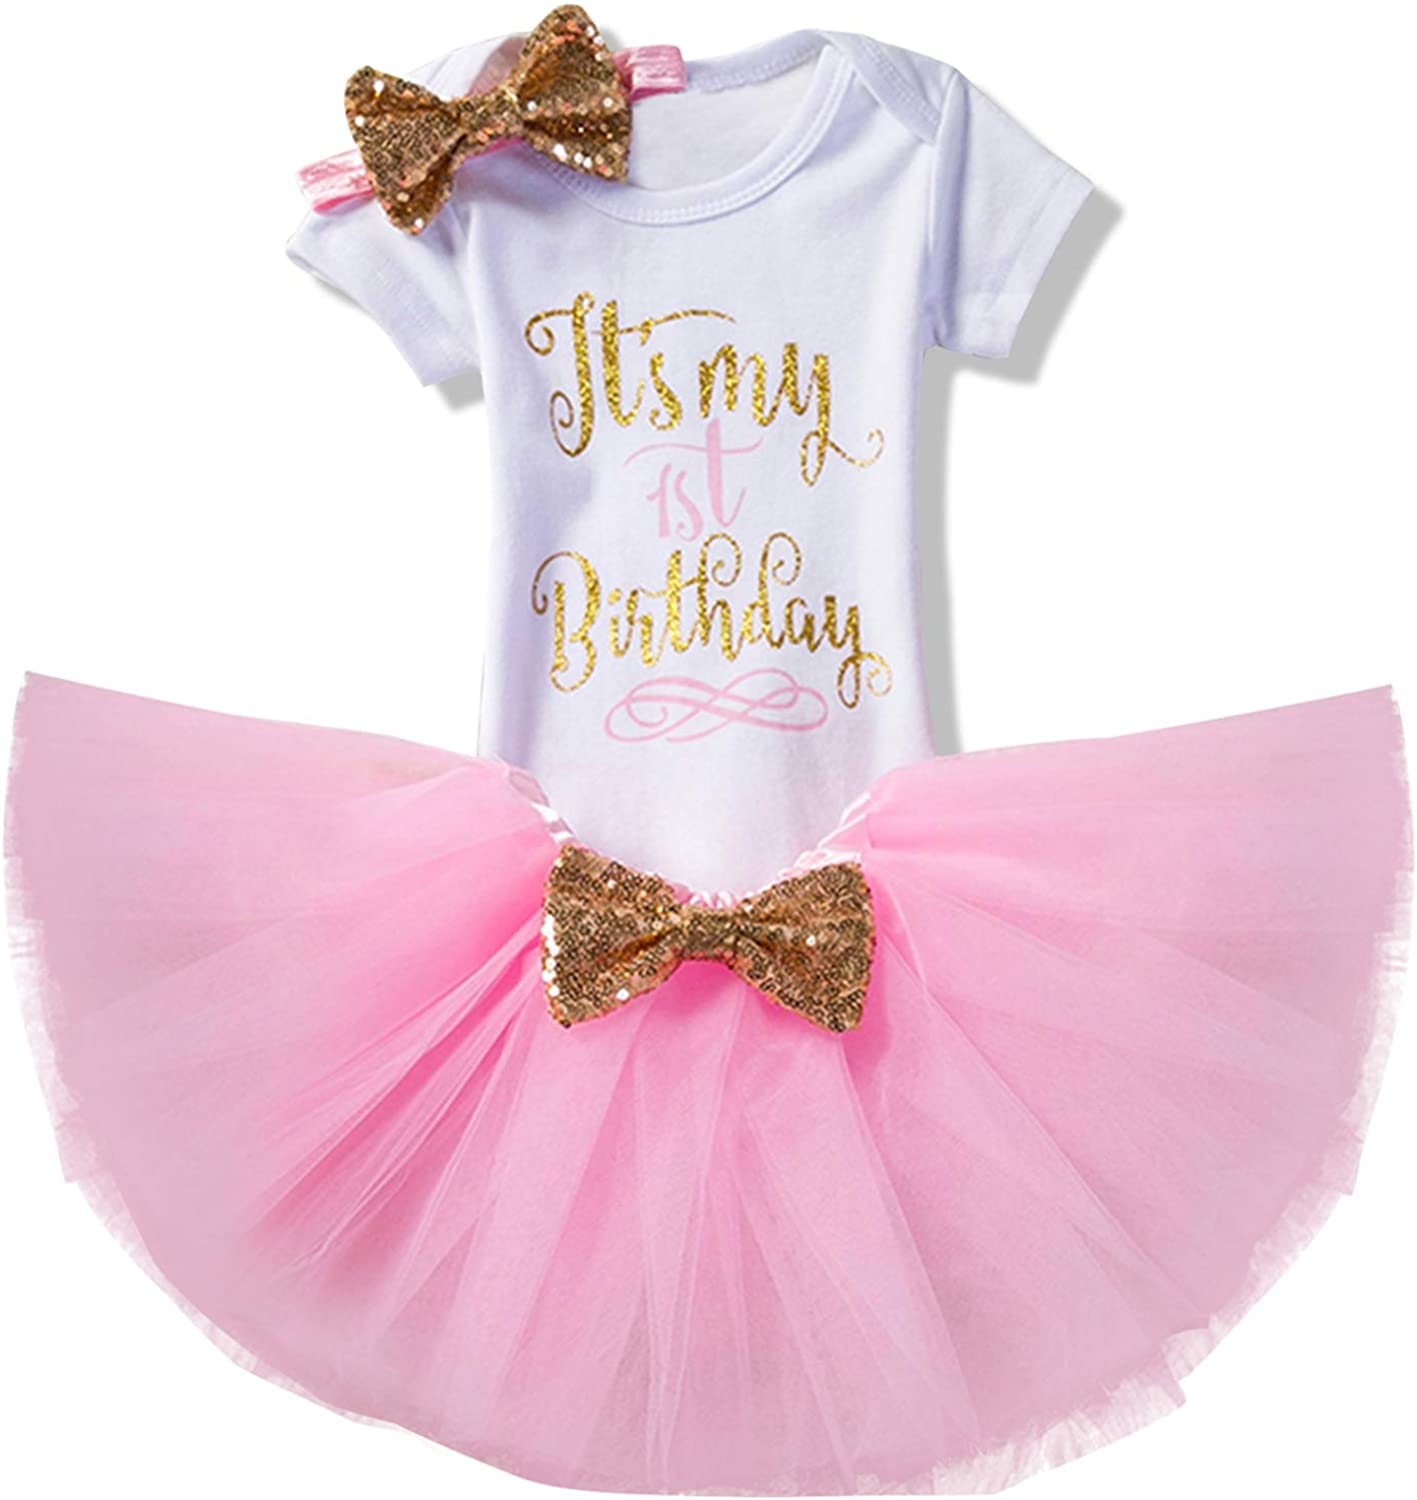 TTYAOVO Newborn Girls Its My 1st/2nd Birthday 4 Pcs Outfits with Romper&Skirt&Headband&Leggings